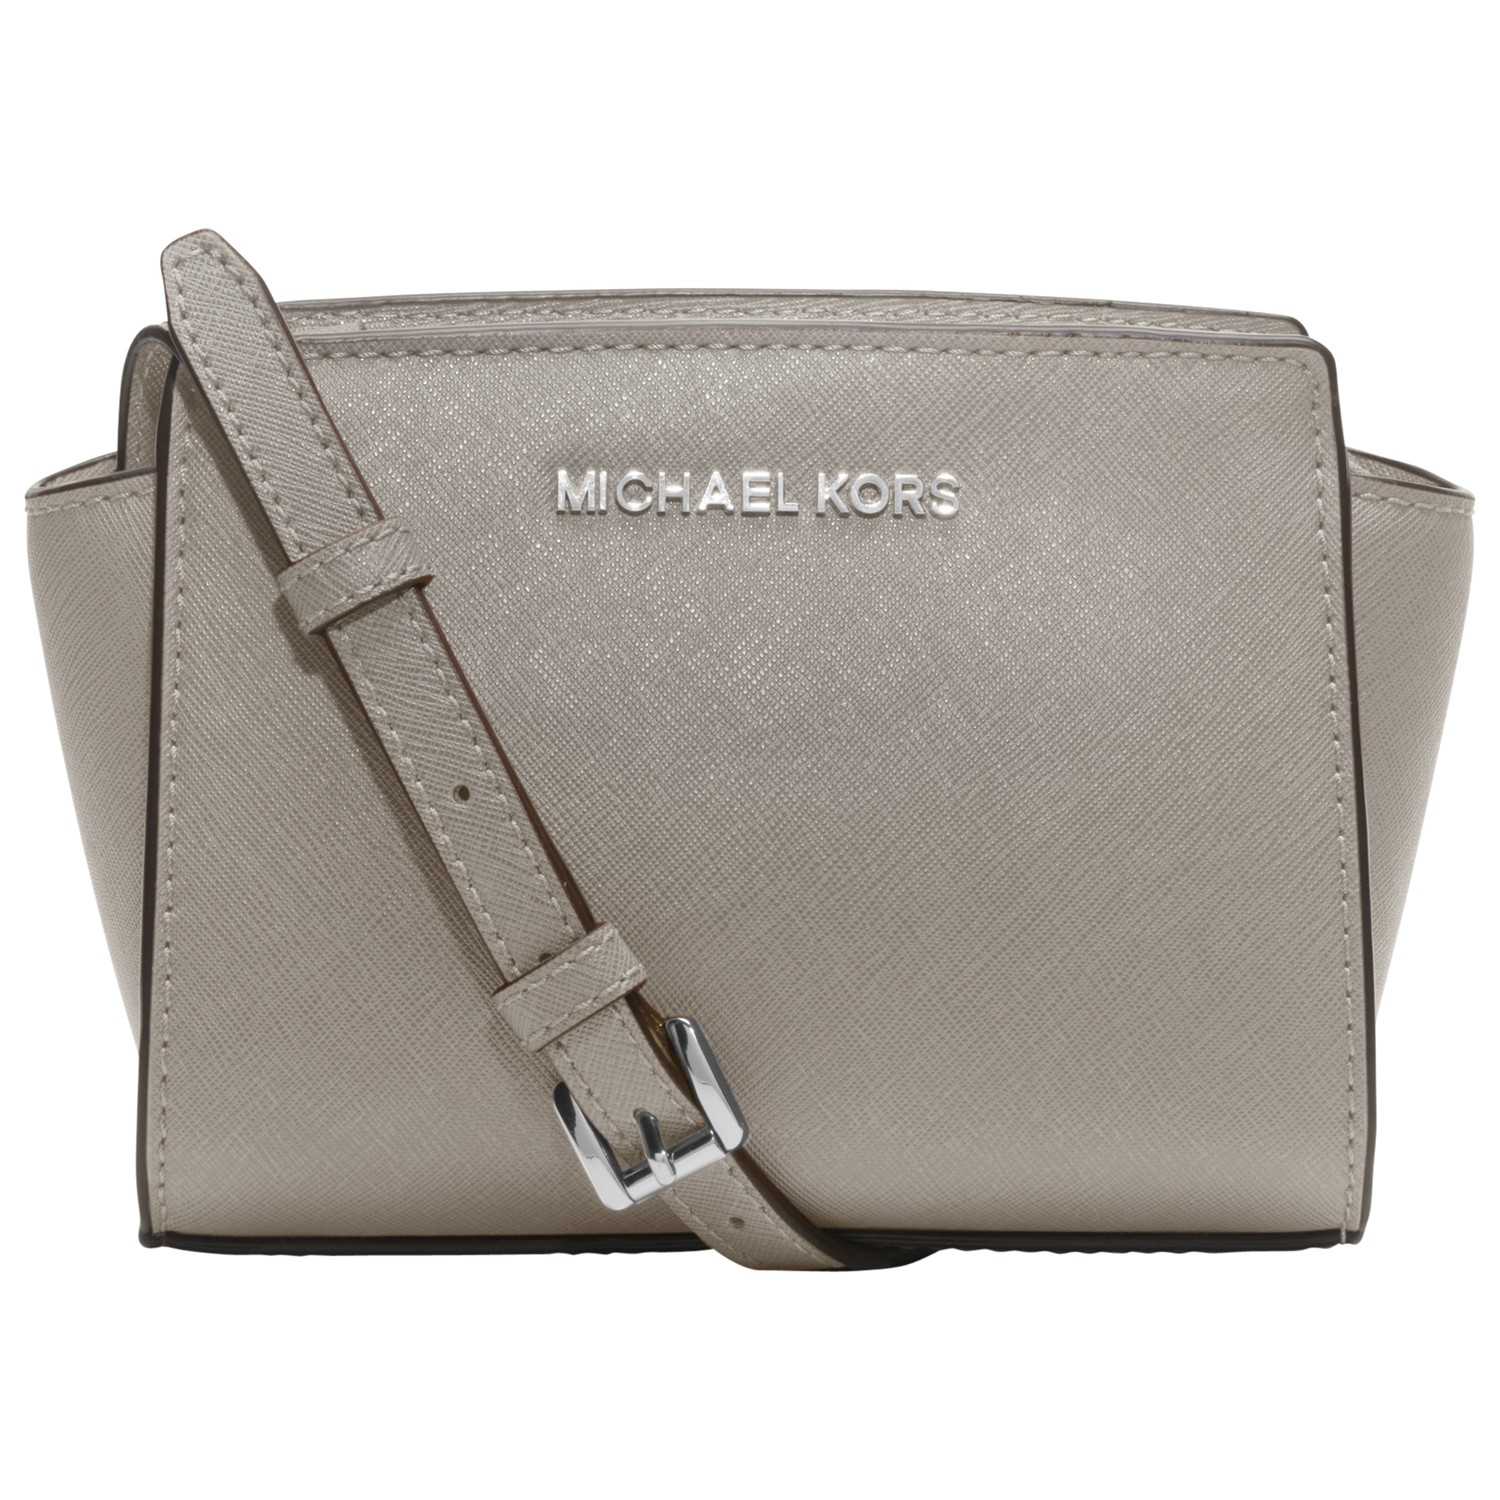 ... coupon for michael michael kors selma saffiano leather mini messenger  bag in gray lyst a1f8e 820cc 143af965641b3